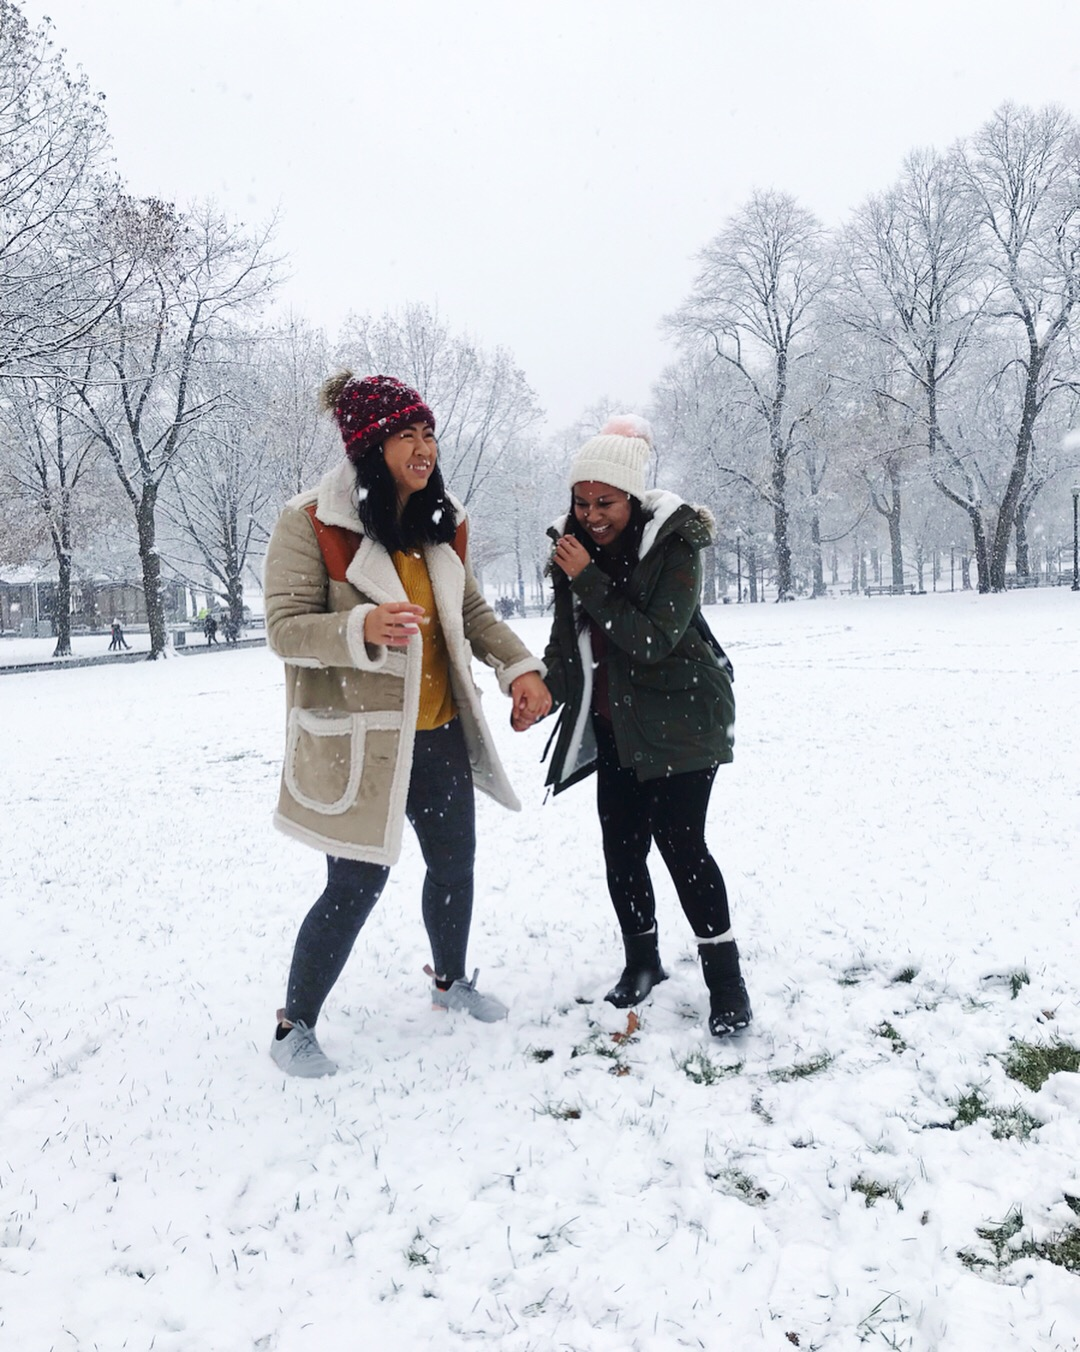 The Shaz Diaries: Snow Tips for First Timers